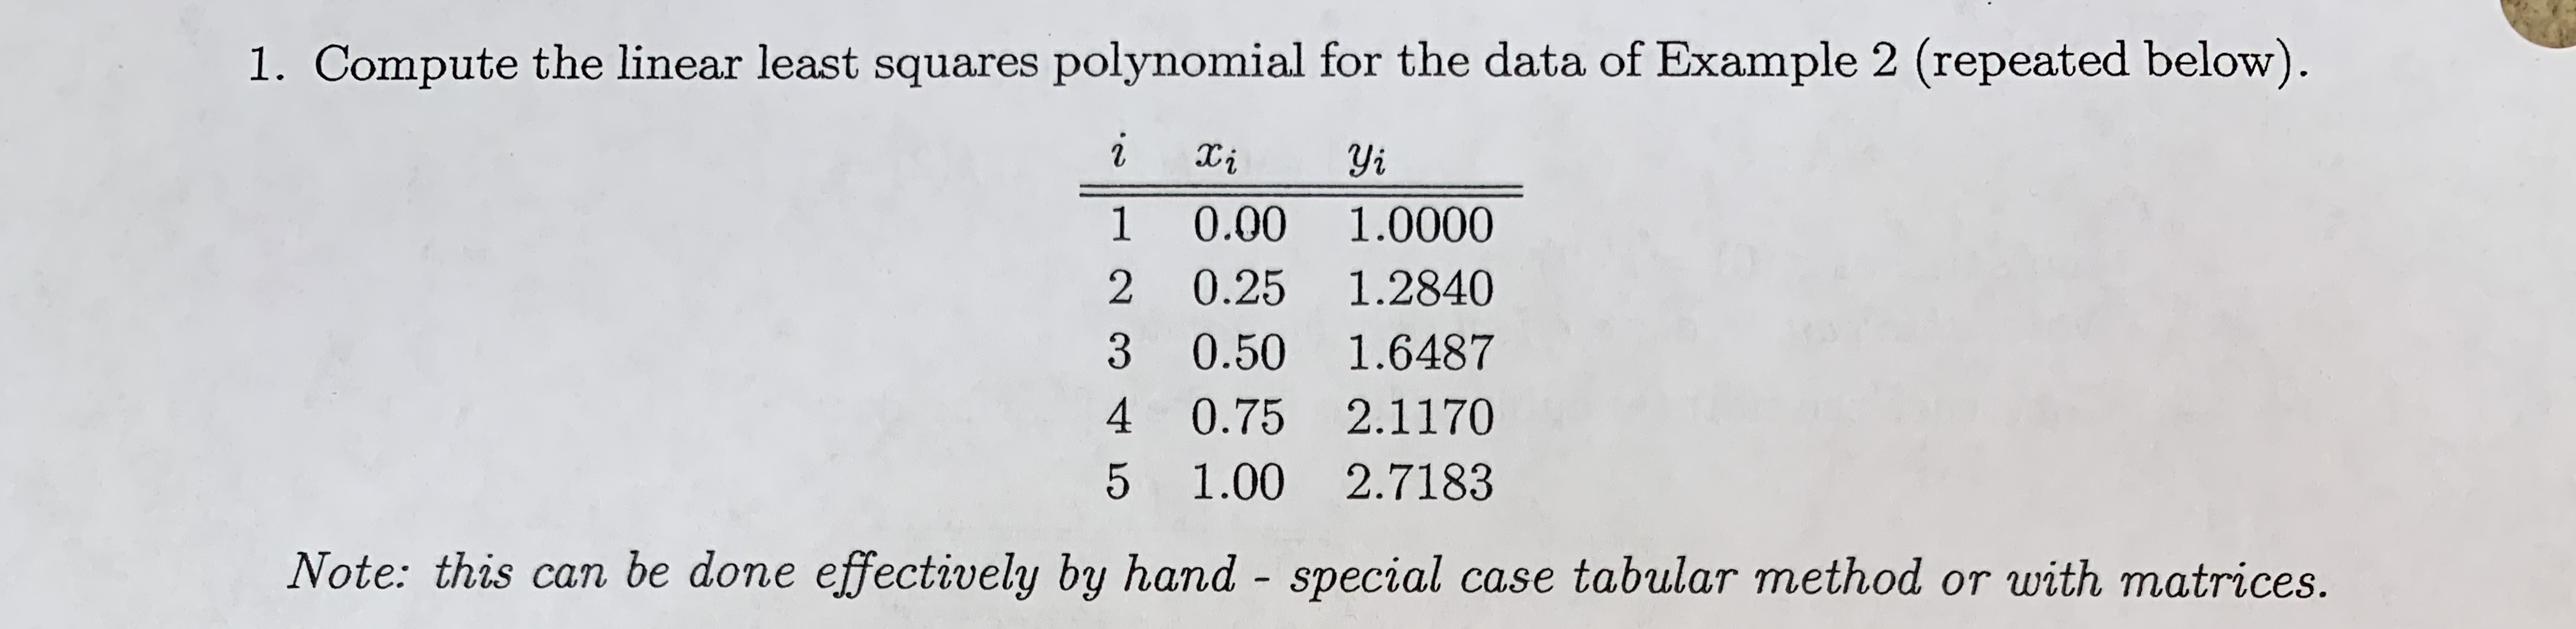 1. Compute the linear least squares polynomial for the data of Example 2 (repeated below). Yi 2 1 0.00 1.0000 2 0.25 1.2840 3 0.50 1.6487 4 0.75 2.1170 5 1.00 2.7183 Note: this can be done effectively by hand - special case tabular method or with matrices.